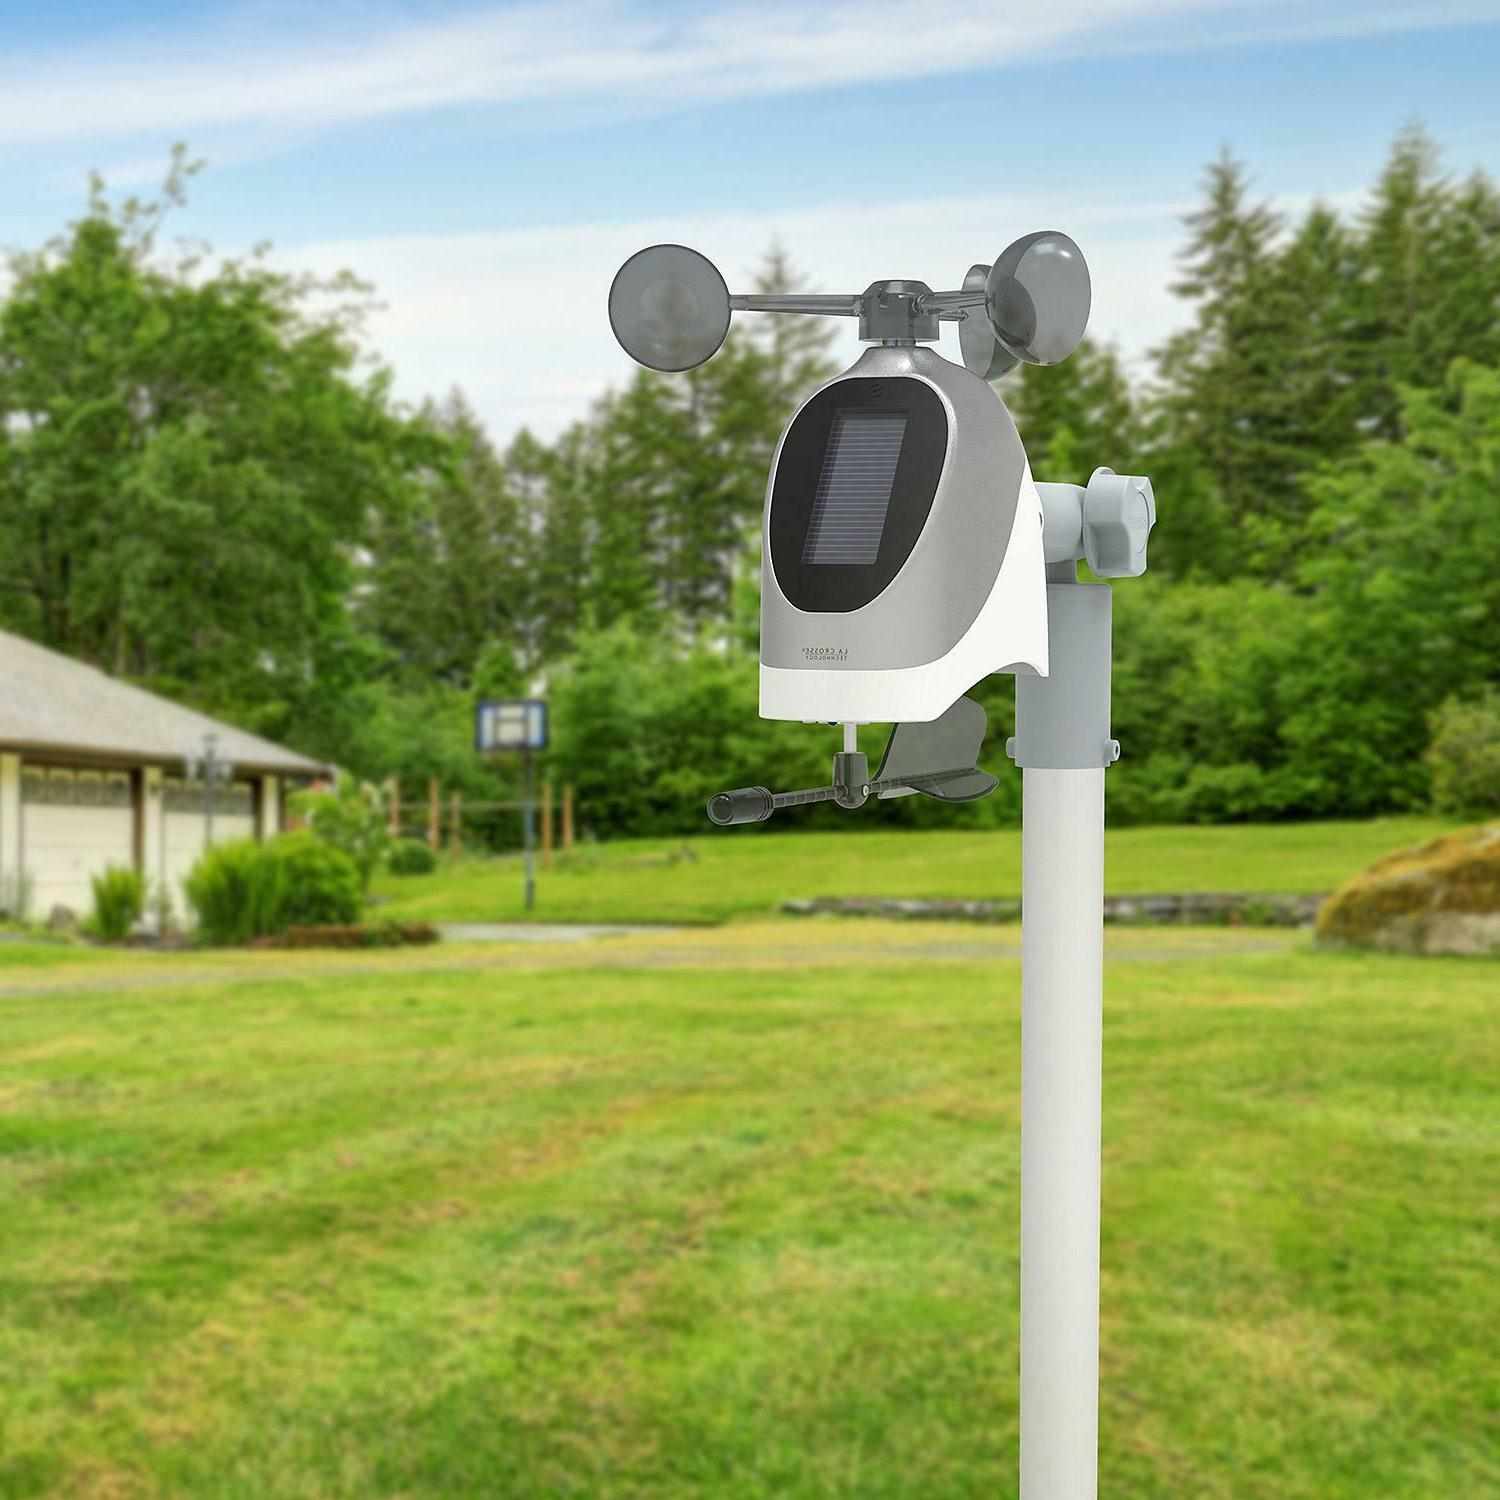 La S81120 Wireless Weather Station with Temperature